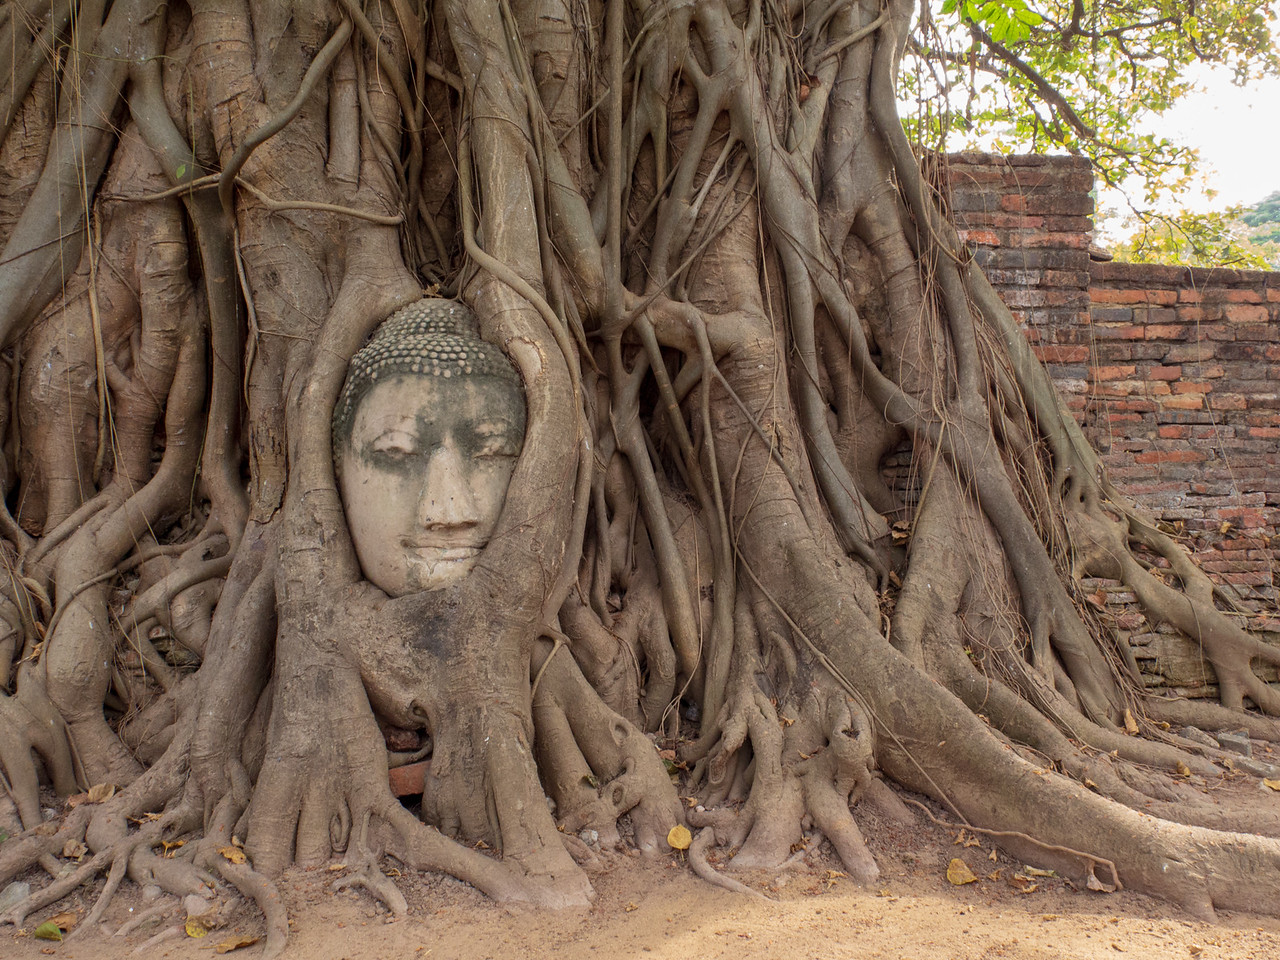 The Tree Bound Buddha of Wat Mahathat